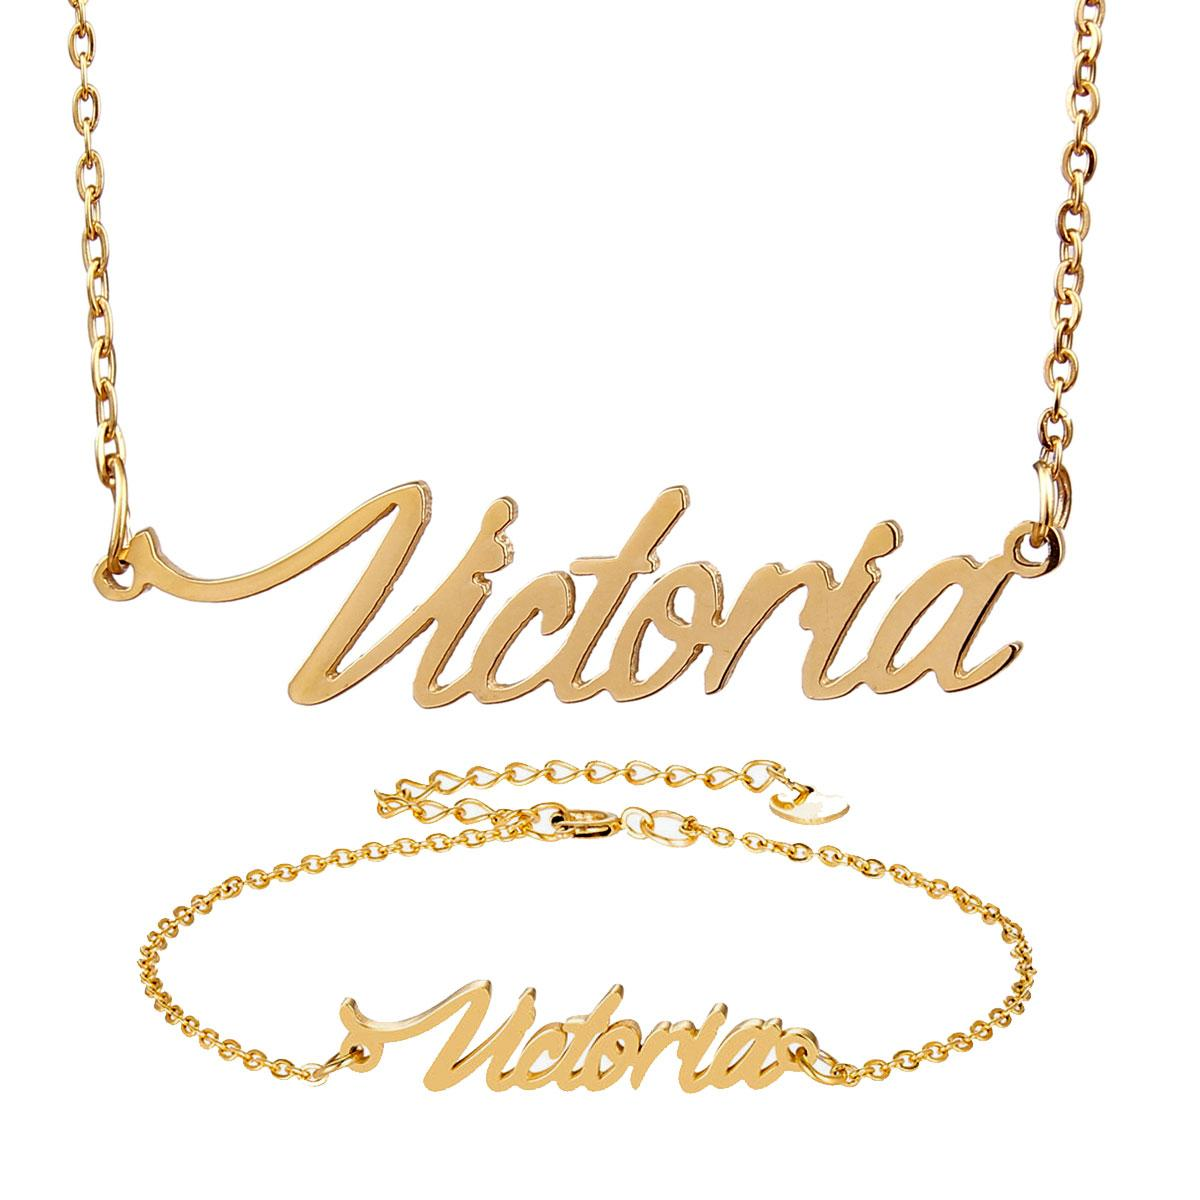 "Fashion Jewelry Stainless Steel Name Necklace Bracelet Set "" Victoria "" Script Letter Gold Choker Chain Necklace Pendant Nameplate Gift"